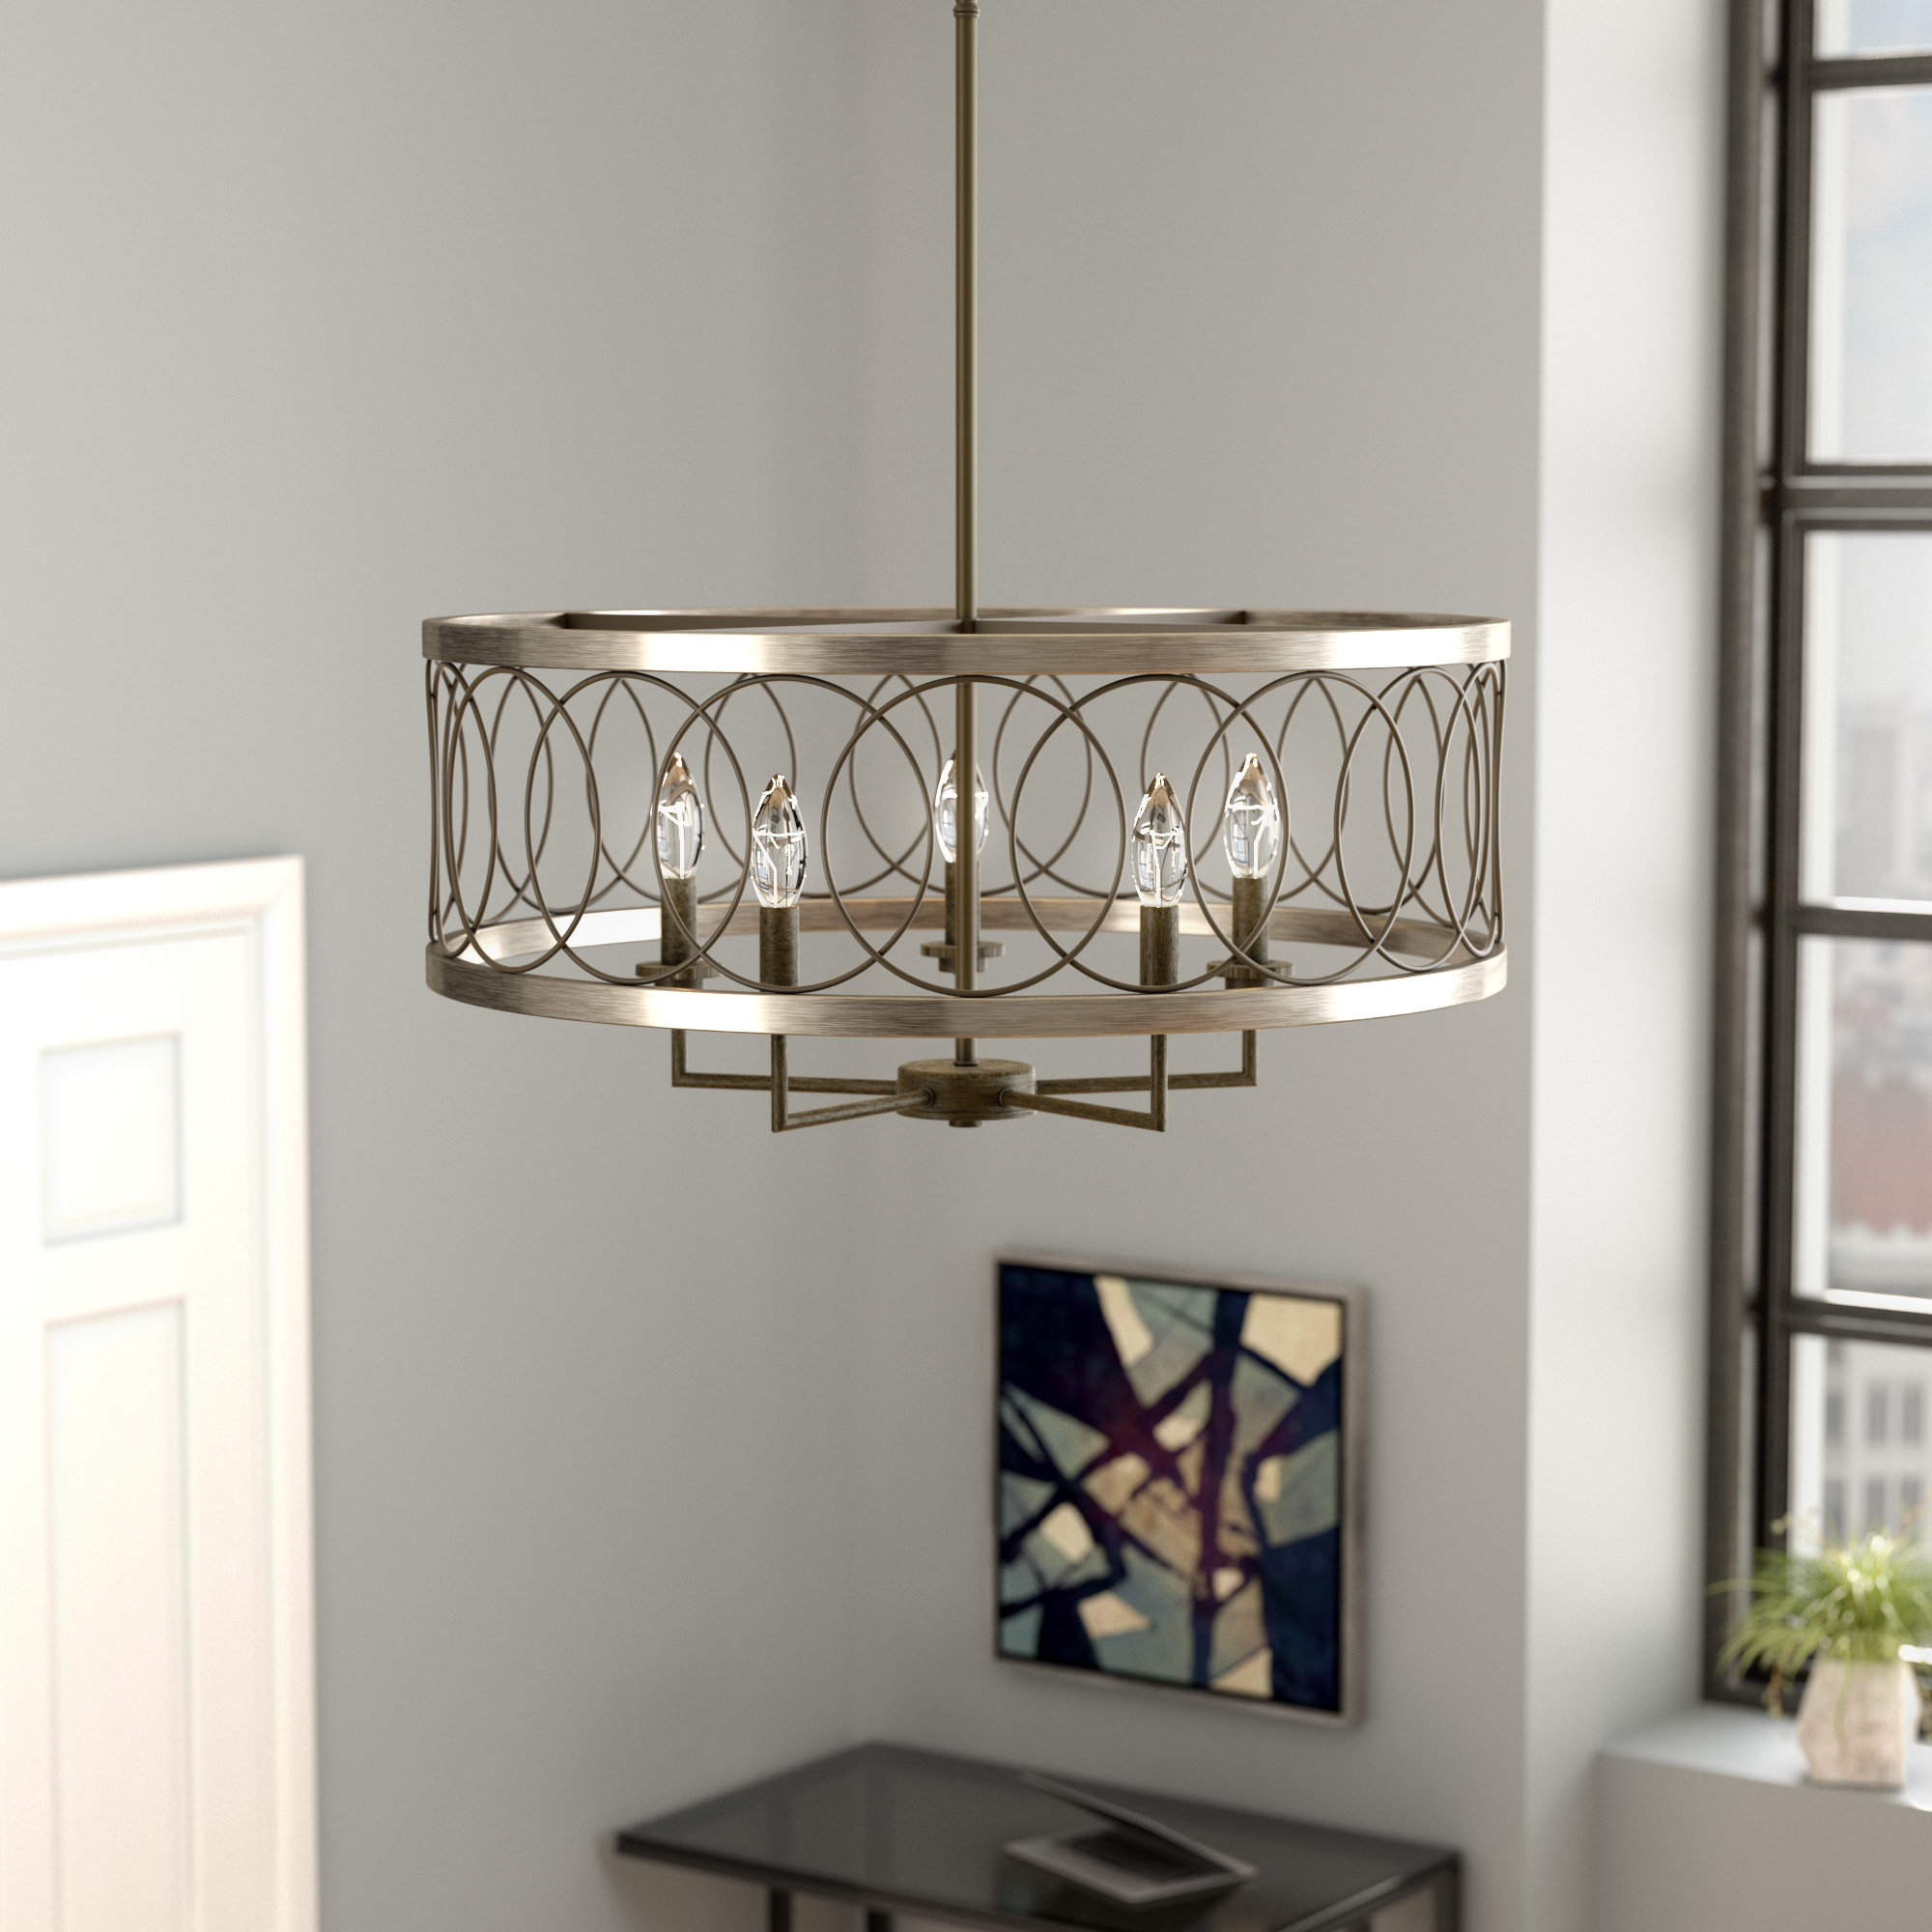 Most Popular Laurel Foundry Modern Farmhouse Denise 4 Light Lantern Drum With Regard To Armande 4 Light Lantern Drum Pendants (View 13 of 20)